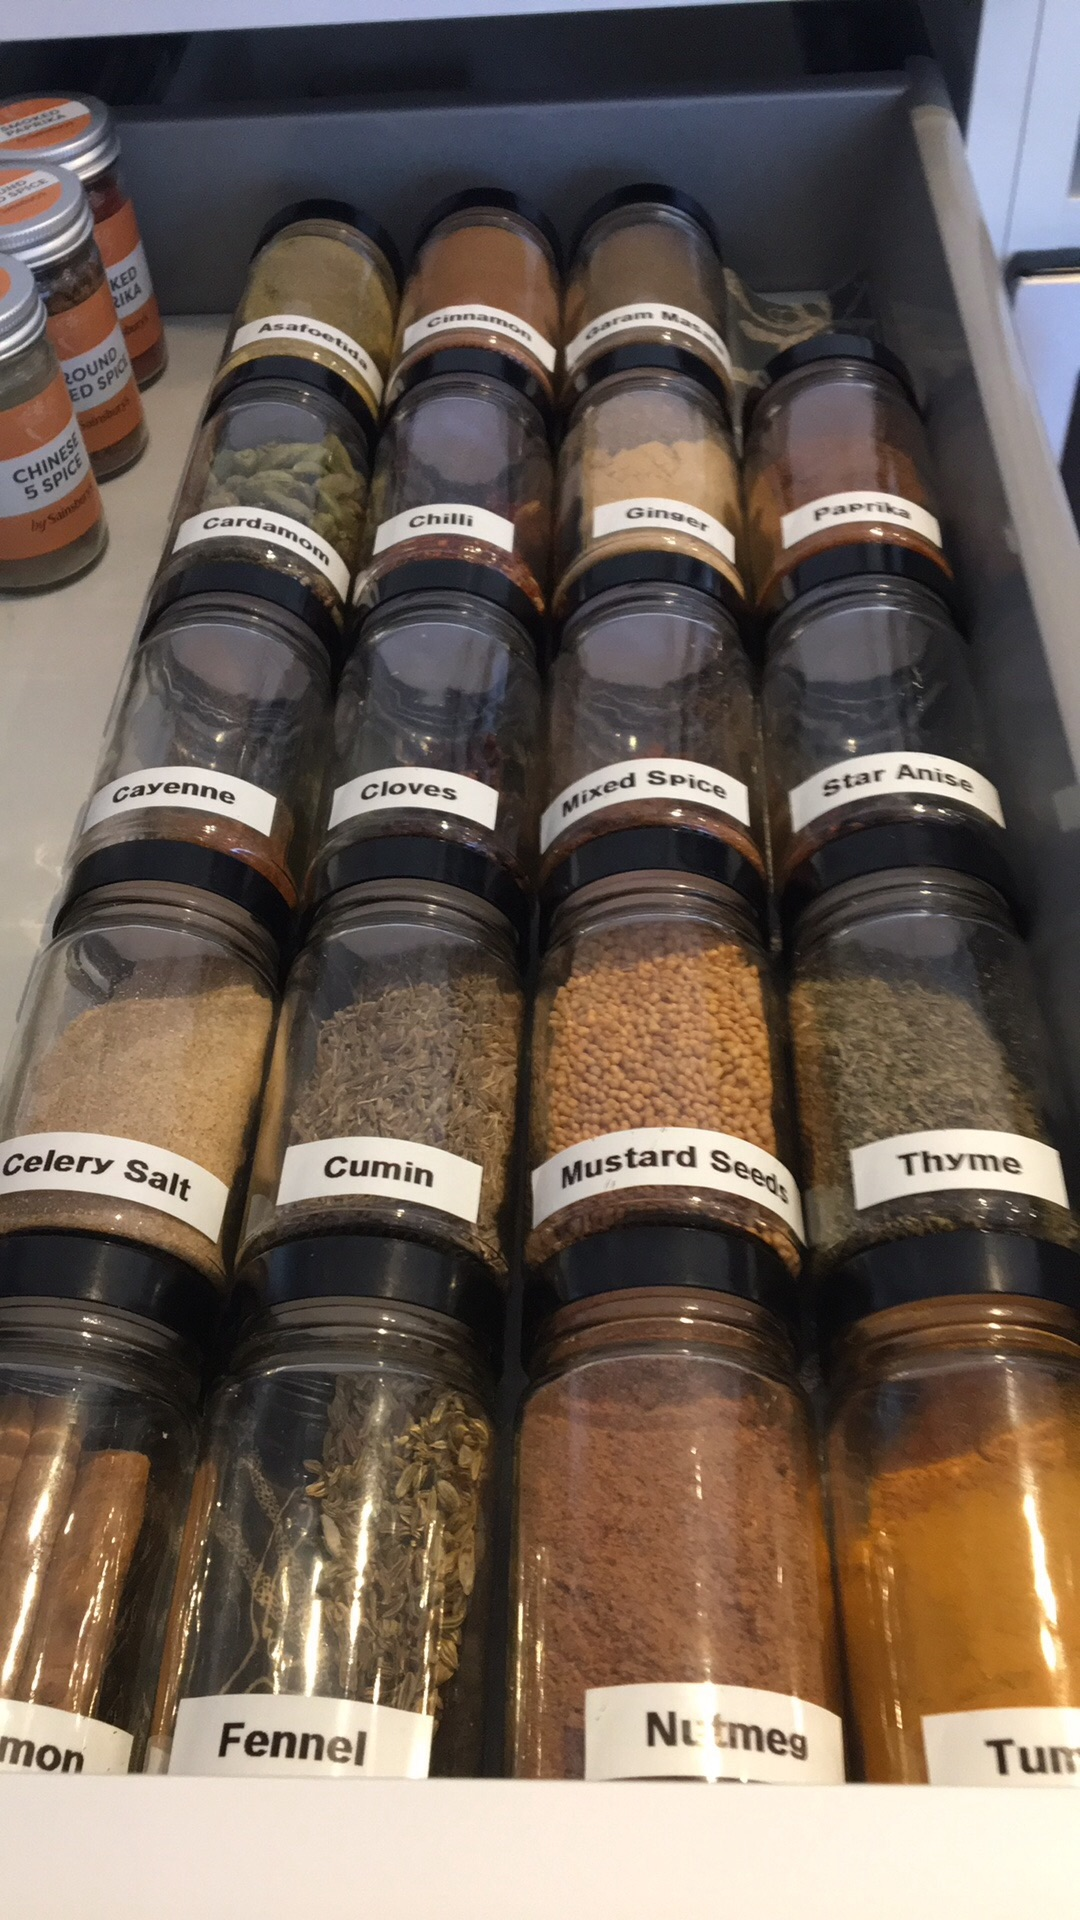 Spice drawer in Cobham